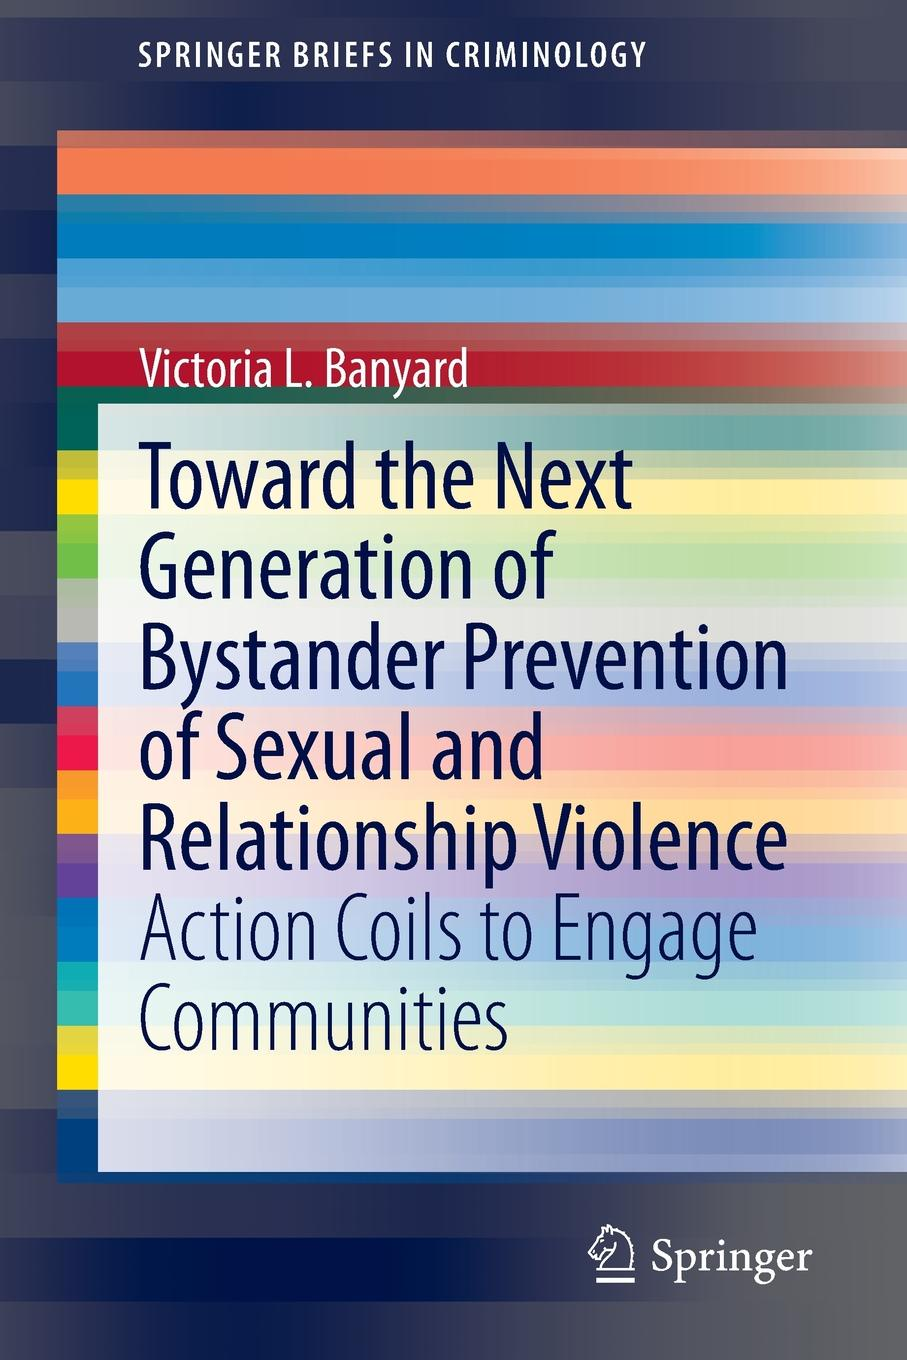 Фото - Victoria L. Banyard Toward the Next Generation of Bystander Prevention of Sexual and Relationship Violence. Action Coils to Engage Communities leiry cornejo chavez structural sexual violence in the peruvian military